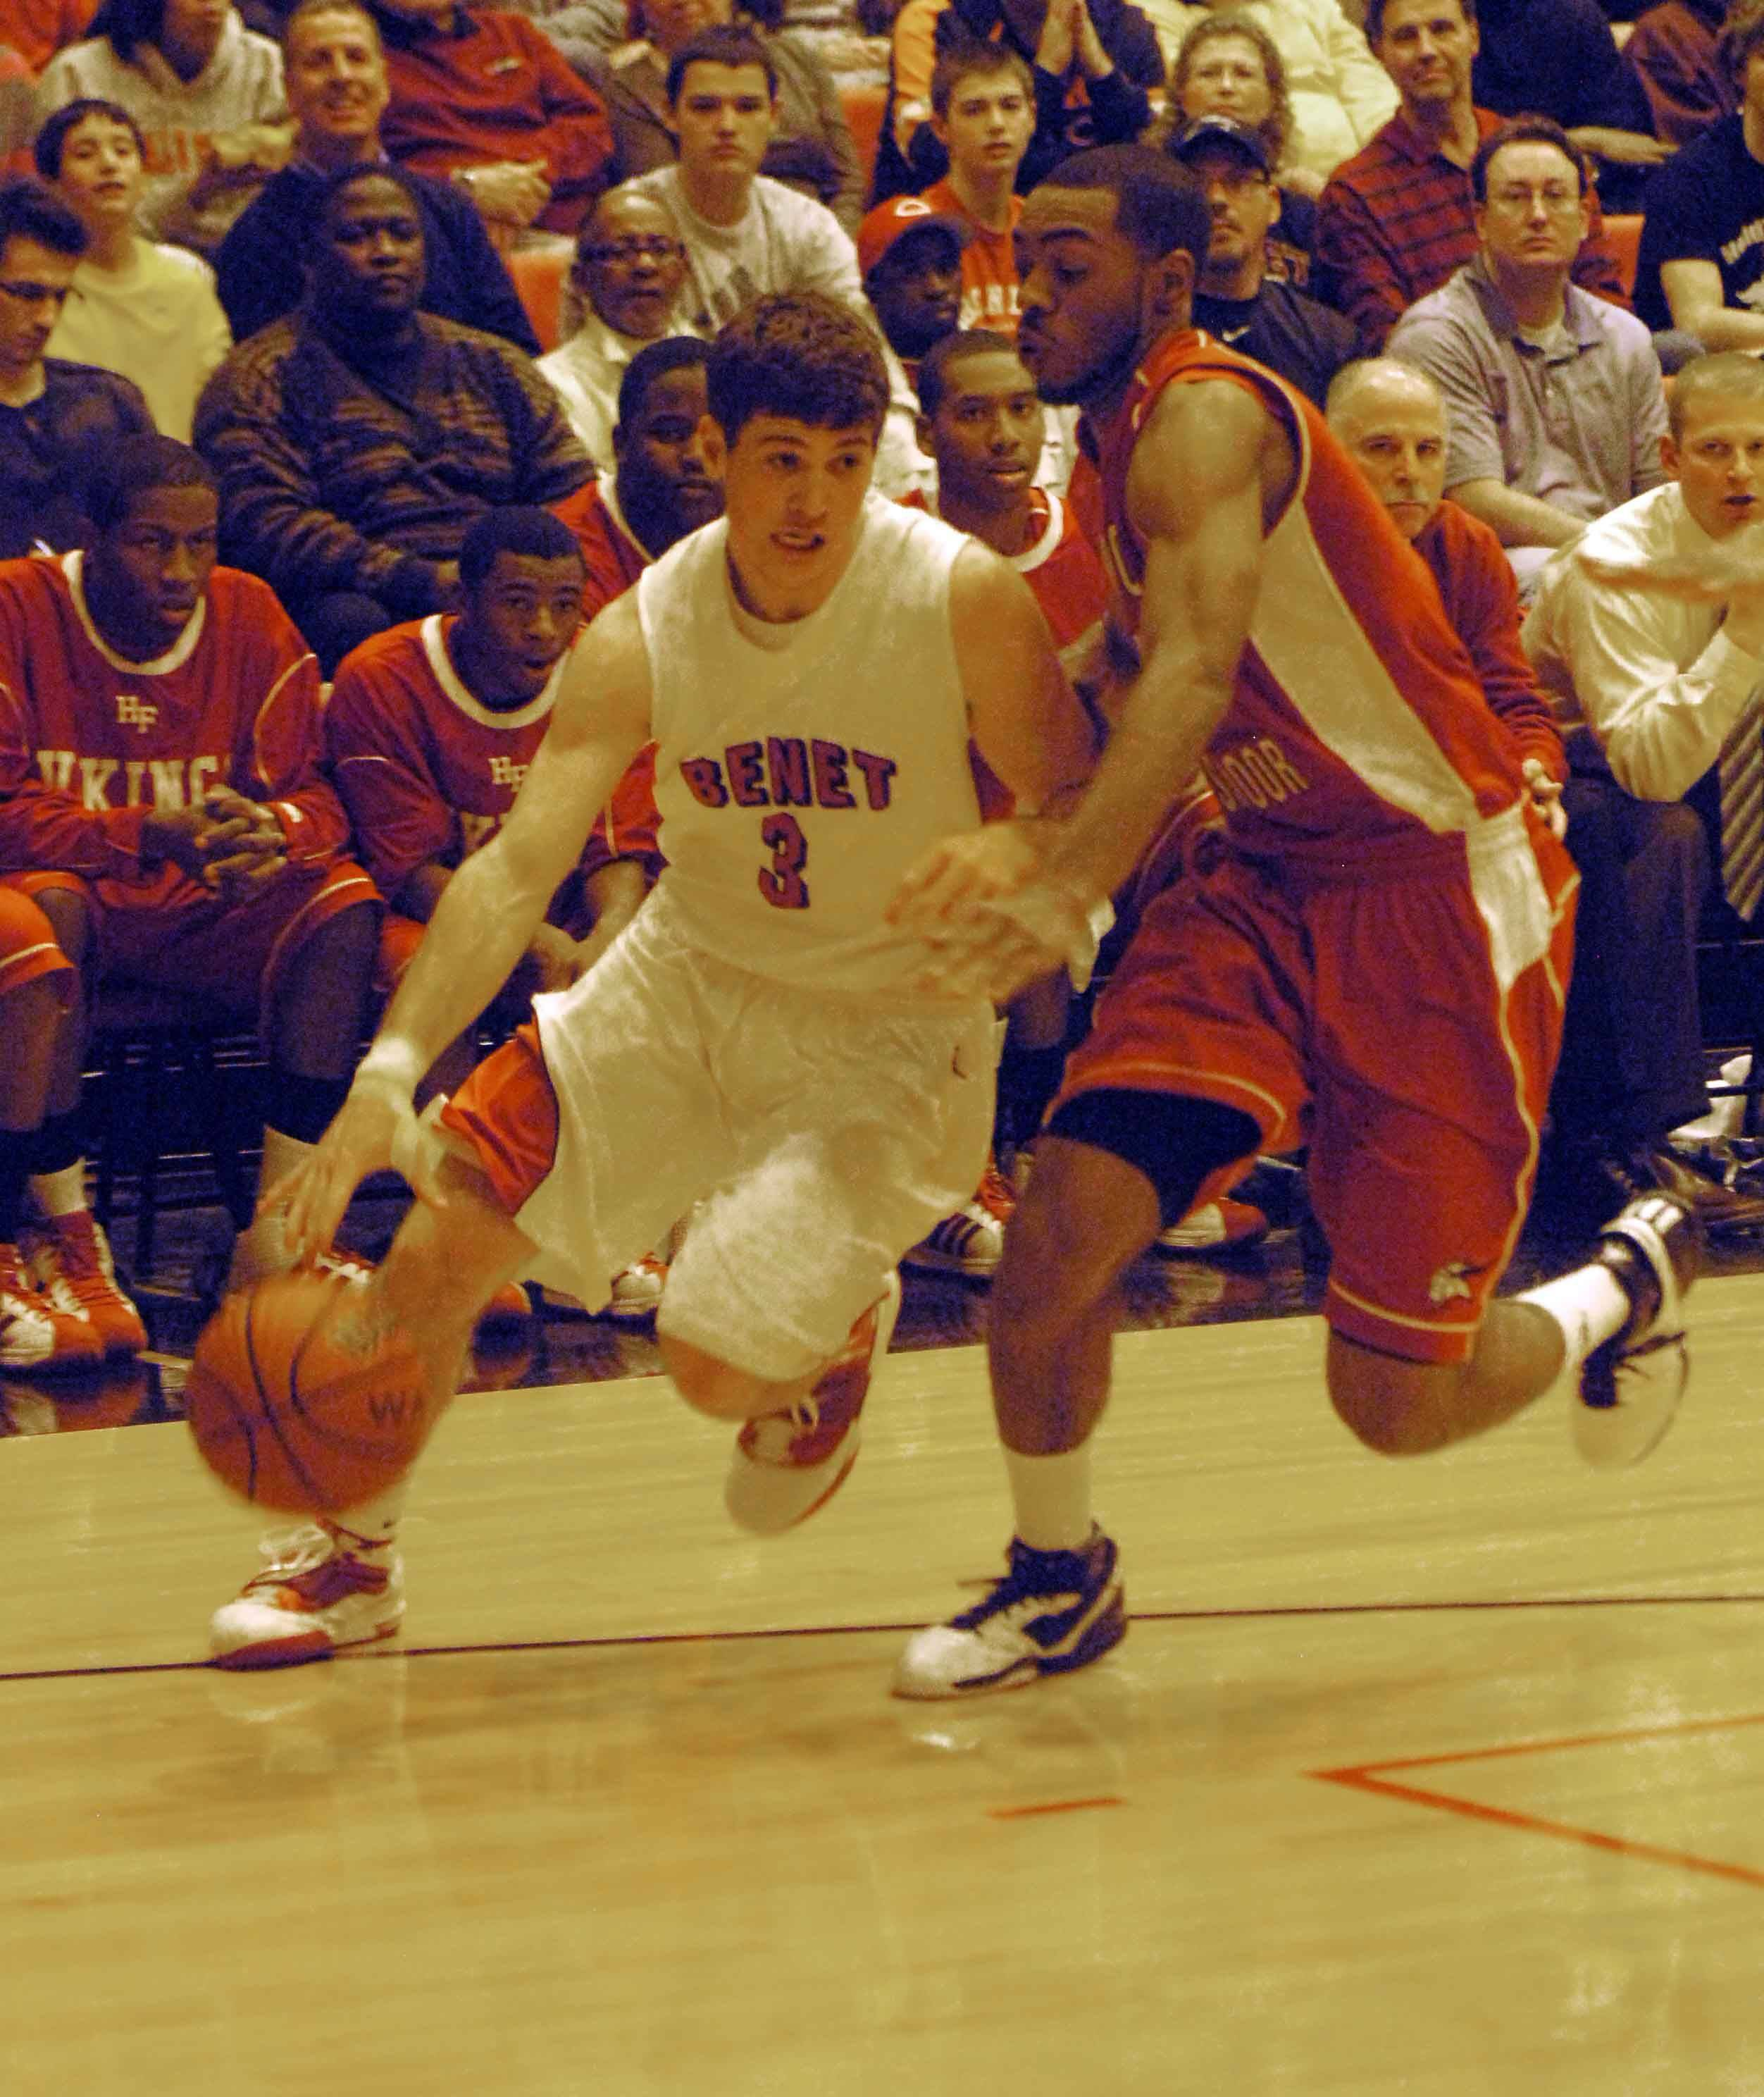 Images of Benet vs. Homewood Flossmoor Boys basketball.